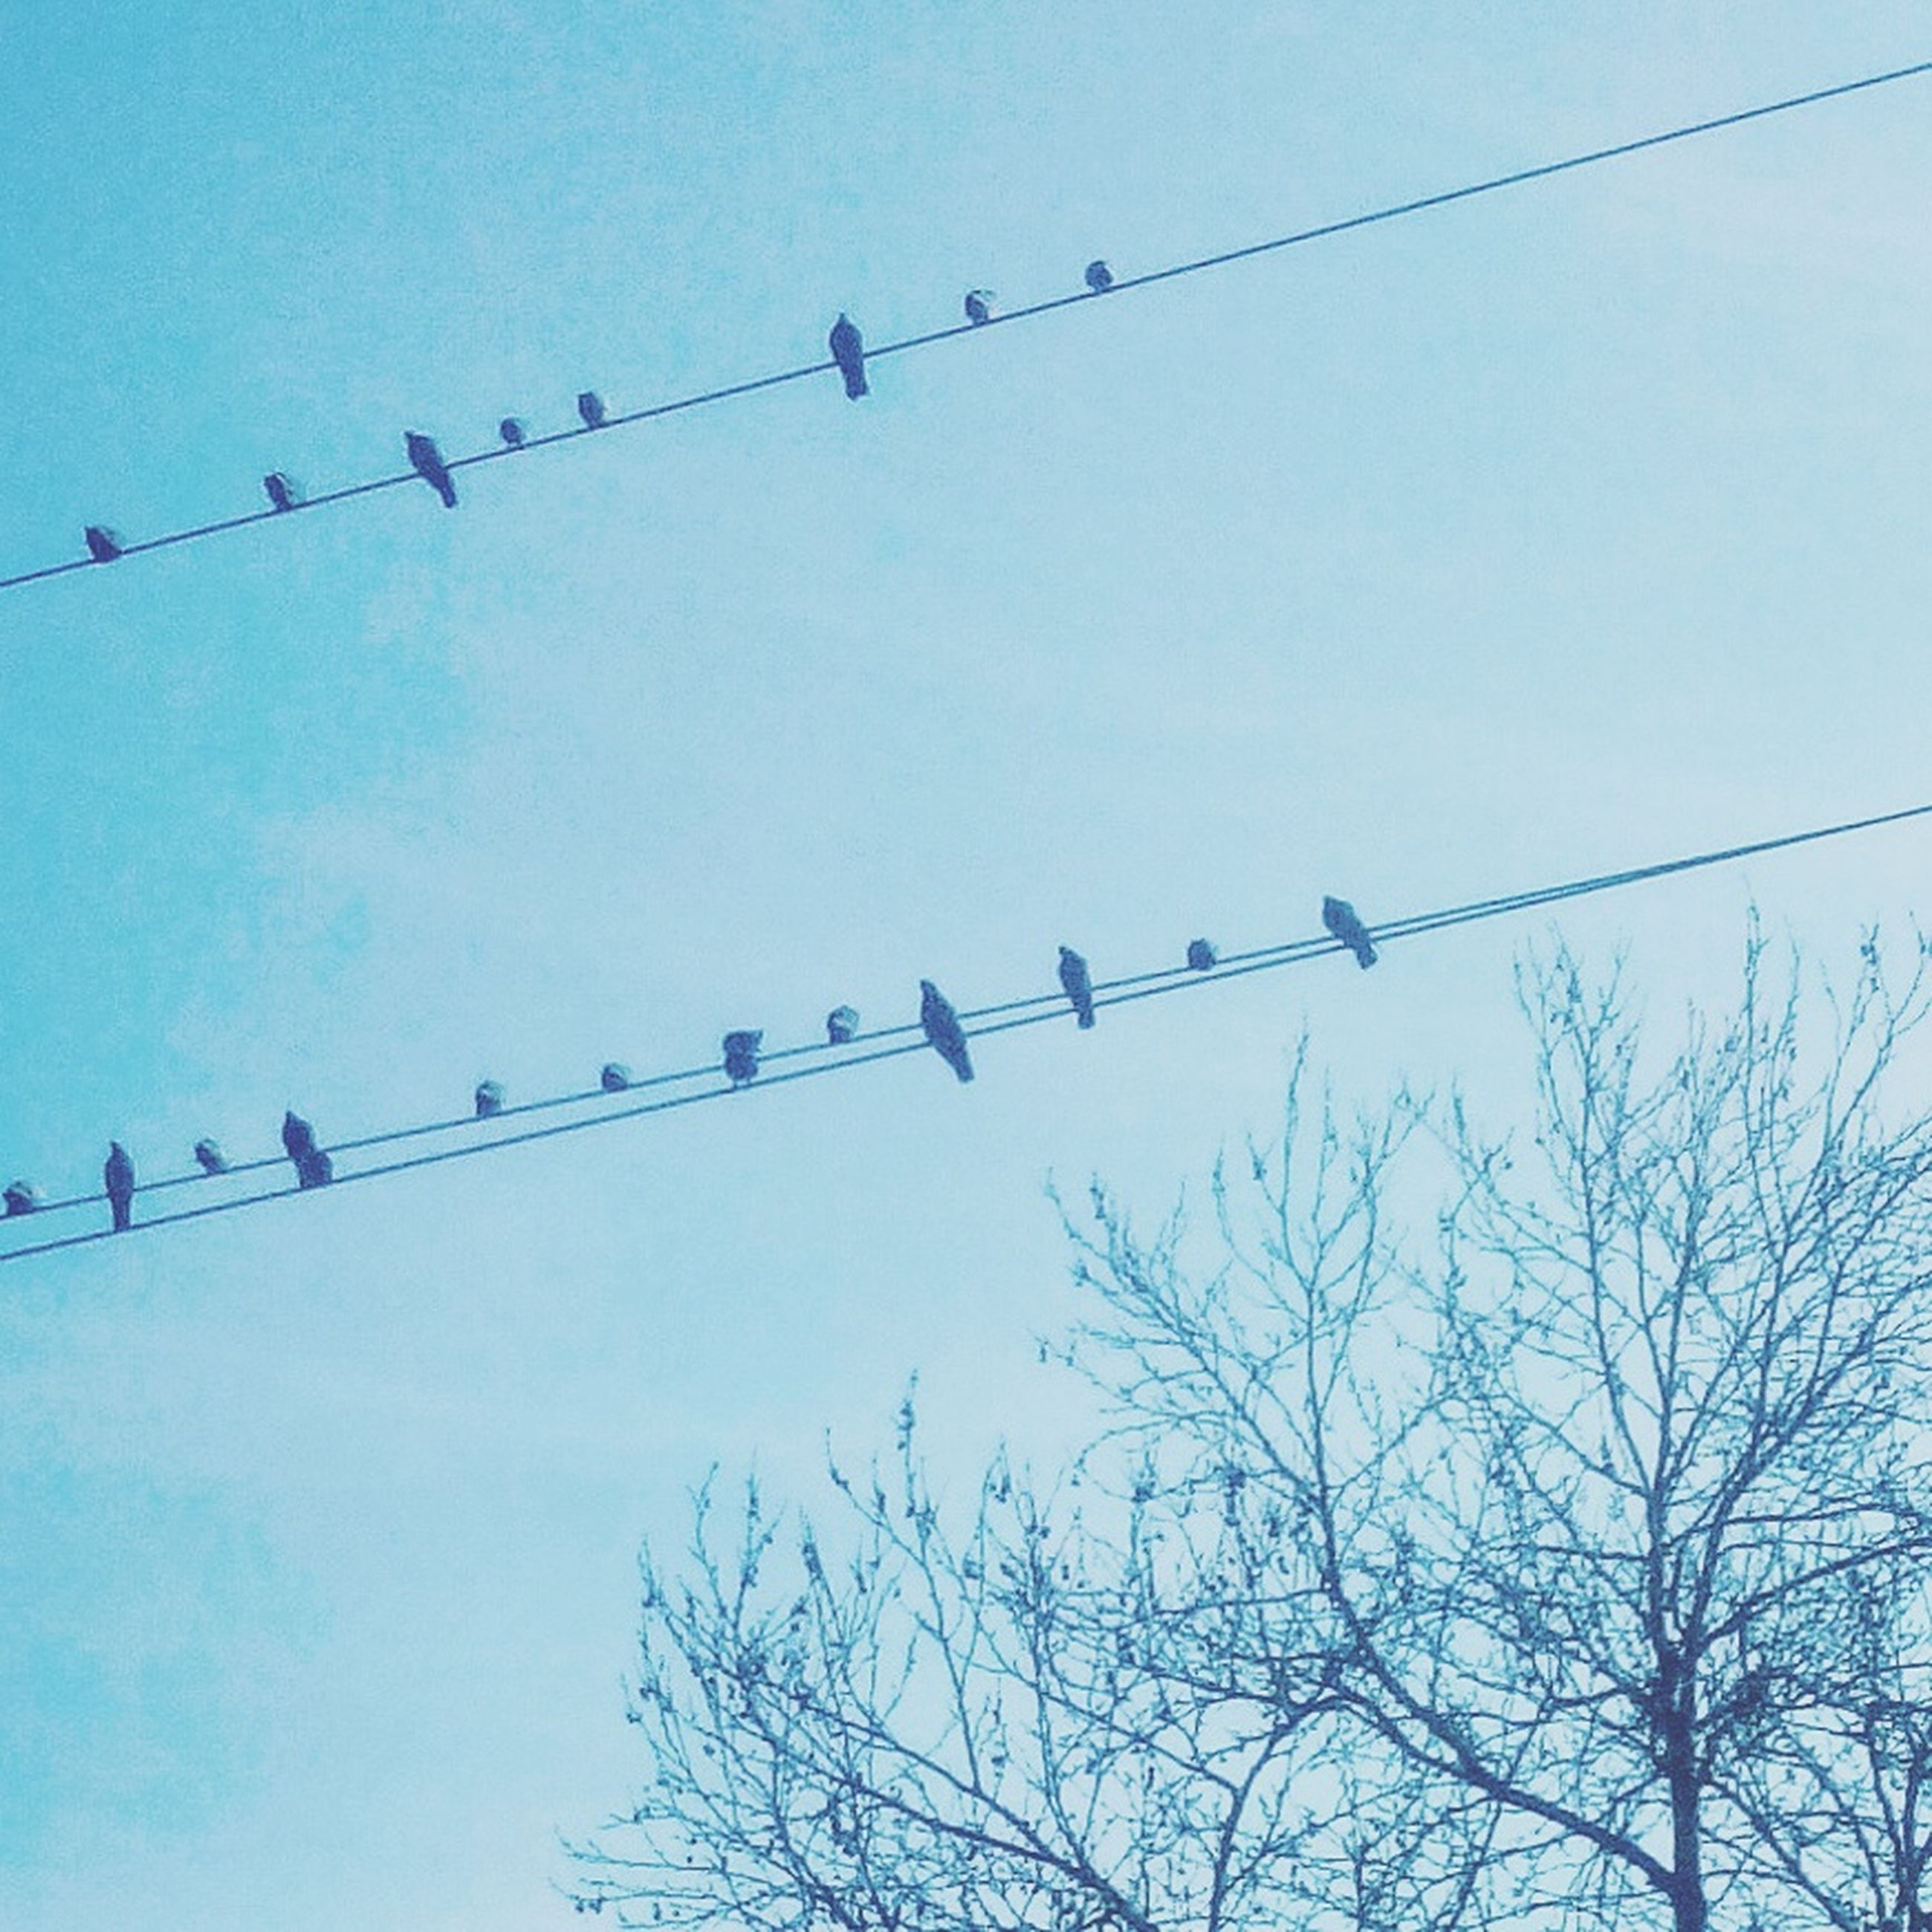 bird, low angle view, animals in the wild, animal themes, wildlife, flock of birds, silhouette, flying, perching, clear sky, cable, power line, sky, connection, nature, blue, tree, outdoors, medium group of animals